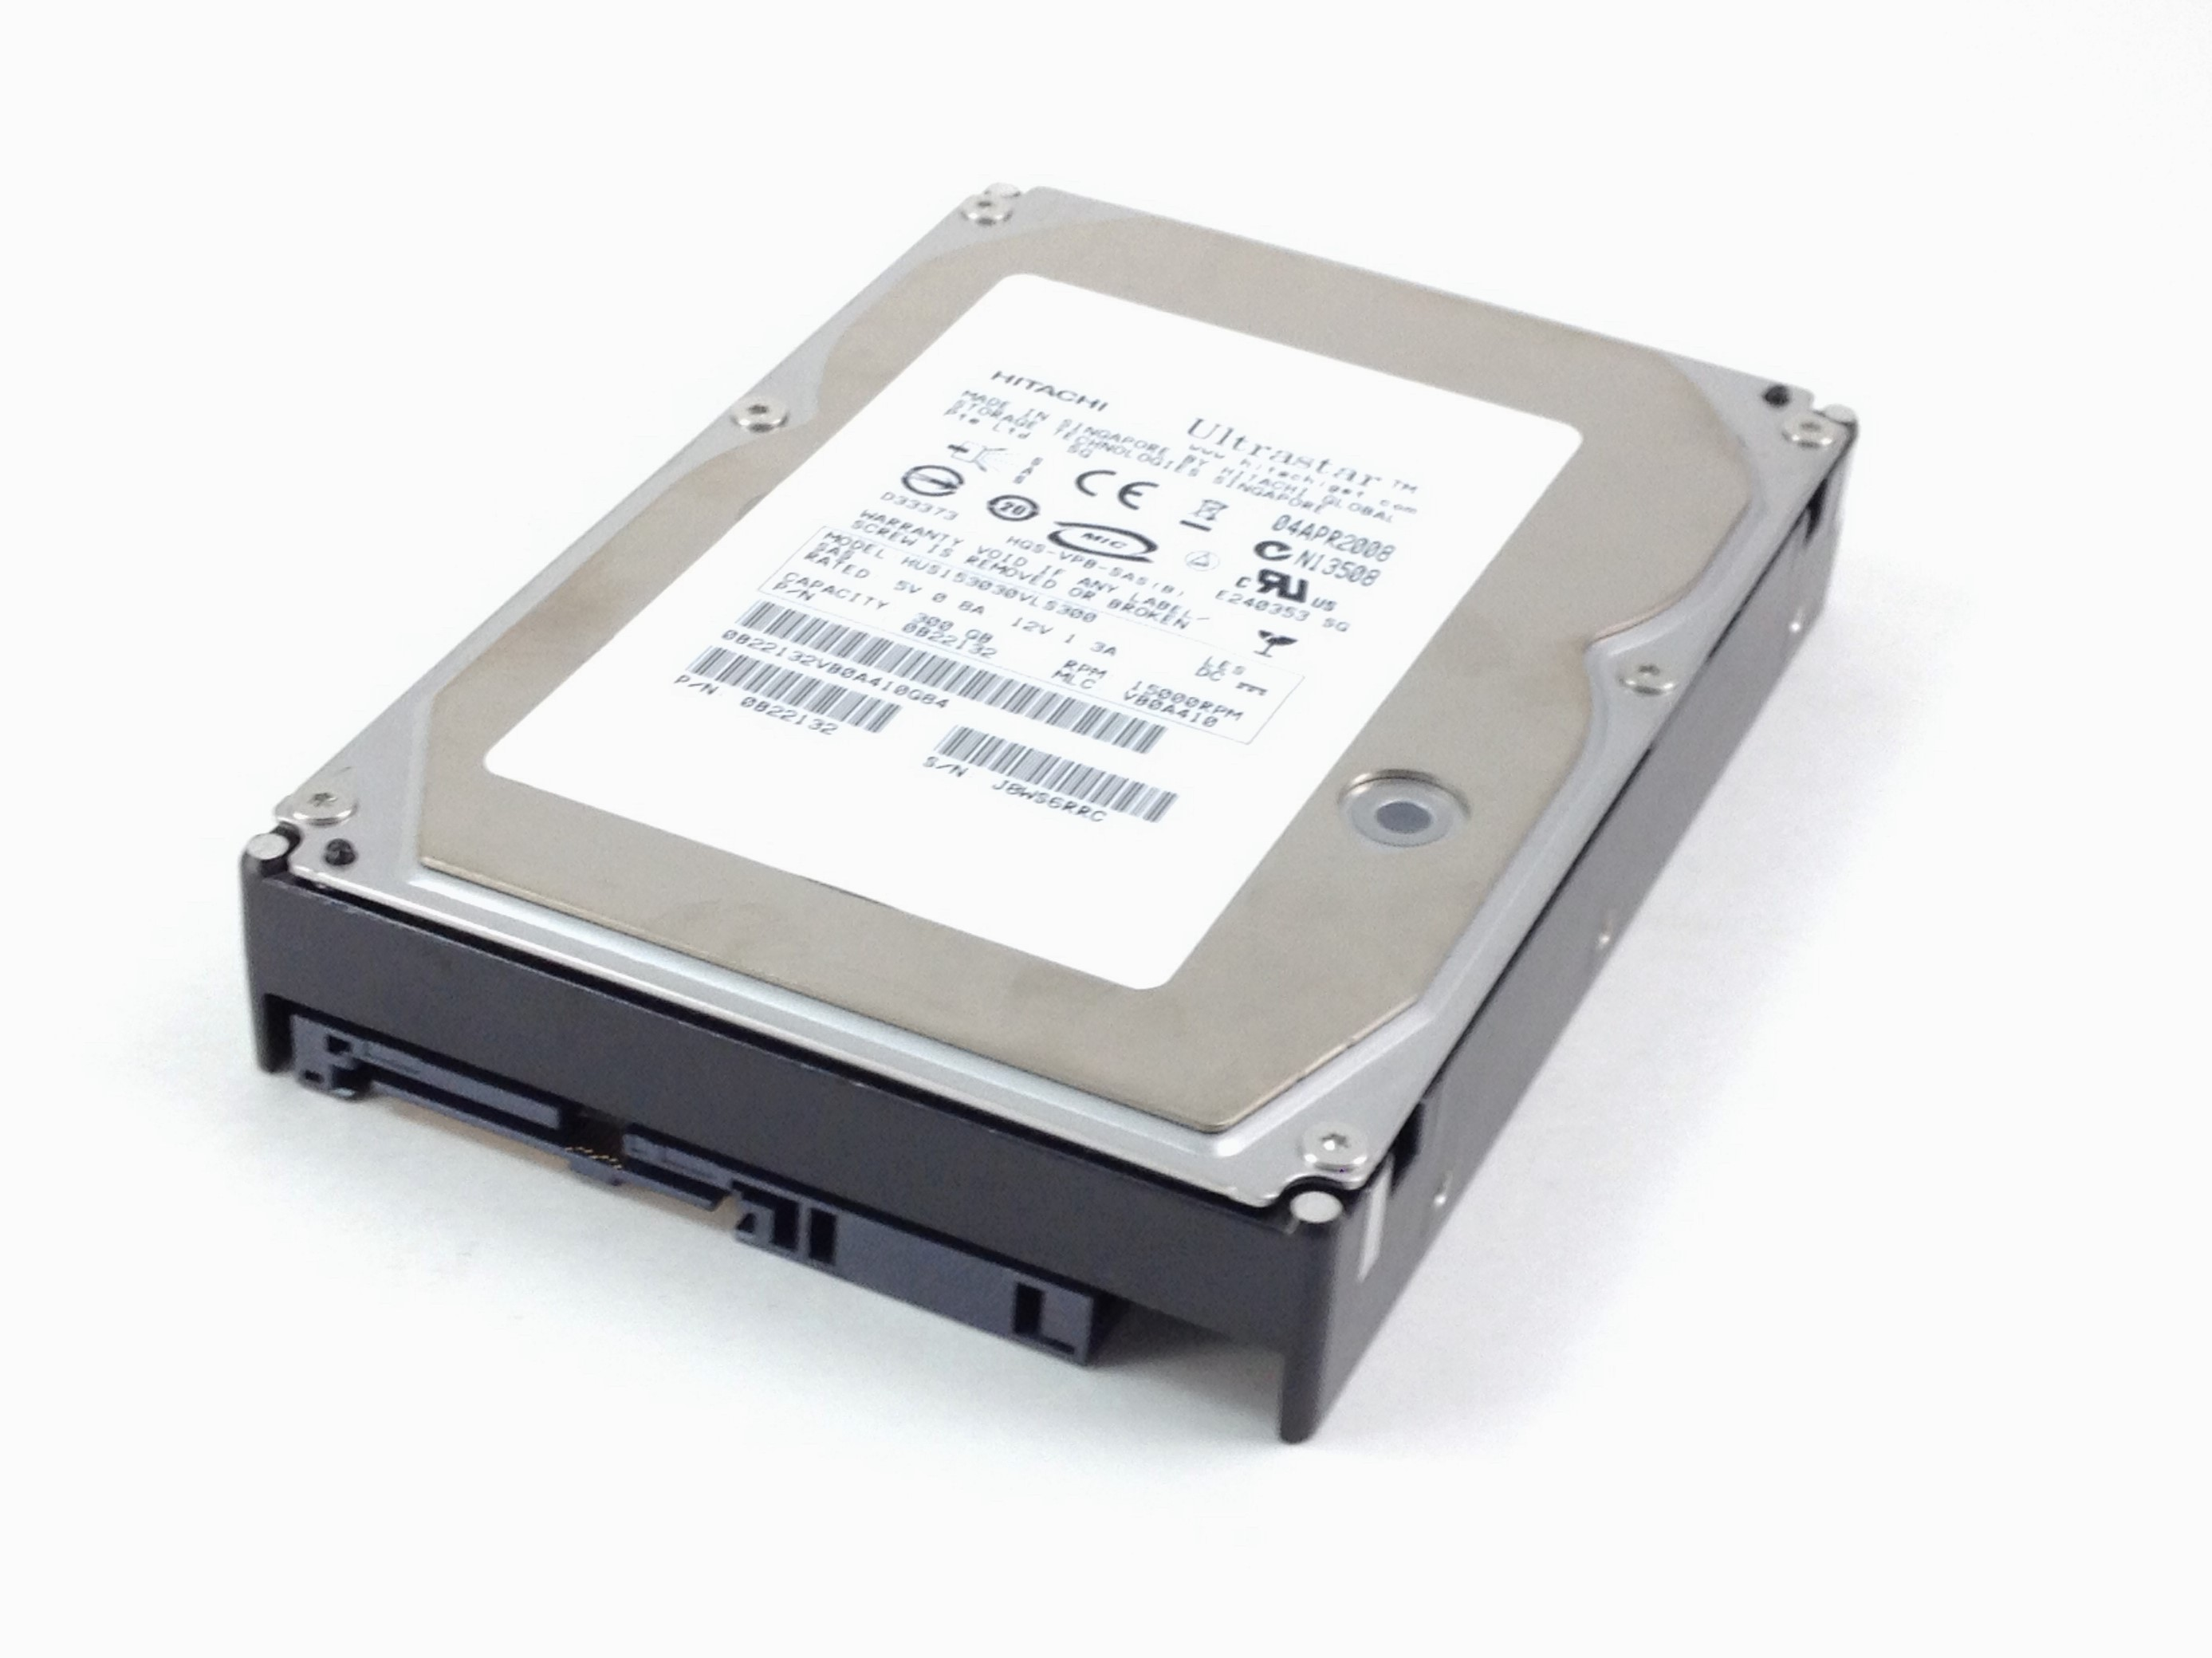 Hitachi Ultrastar 300GB 15K SAS 3.5'' Hard Drive (0B22132)